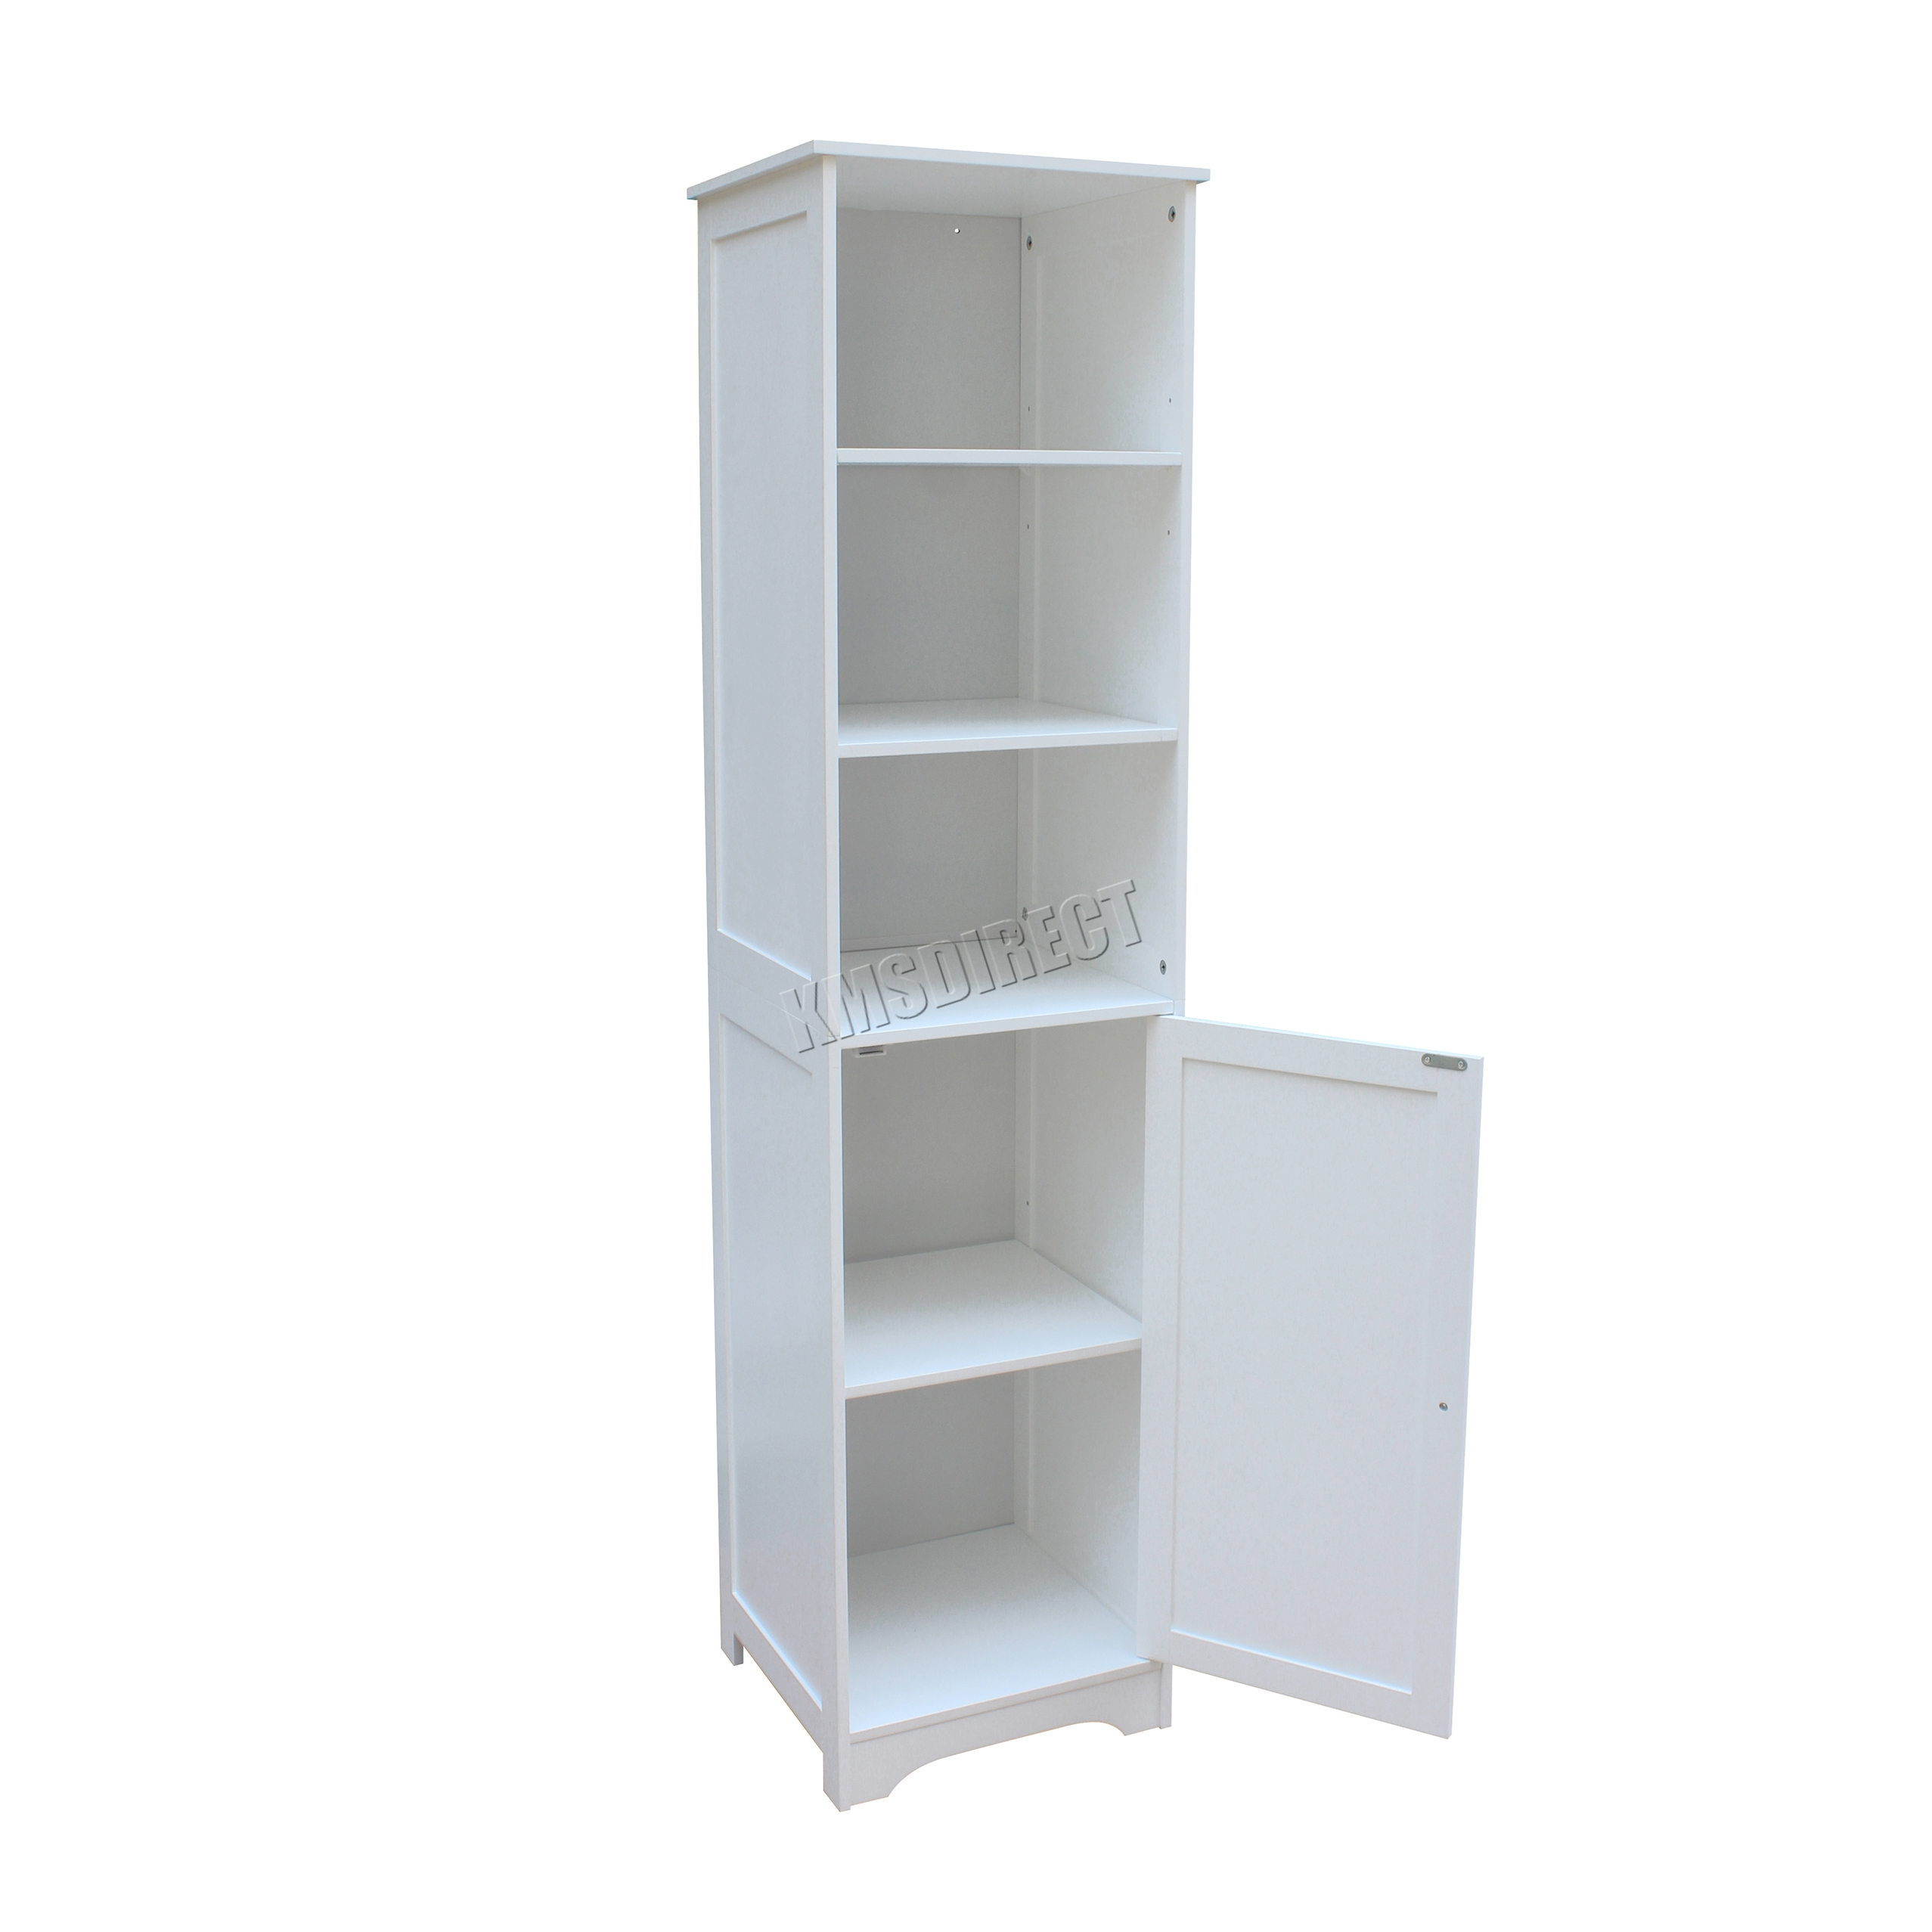 Westwood wall mount wooden bathroom cabinet tall shelving for Bathroom cabinets 40cm wide